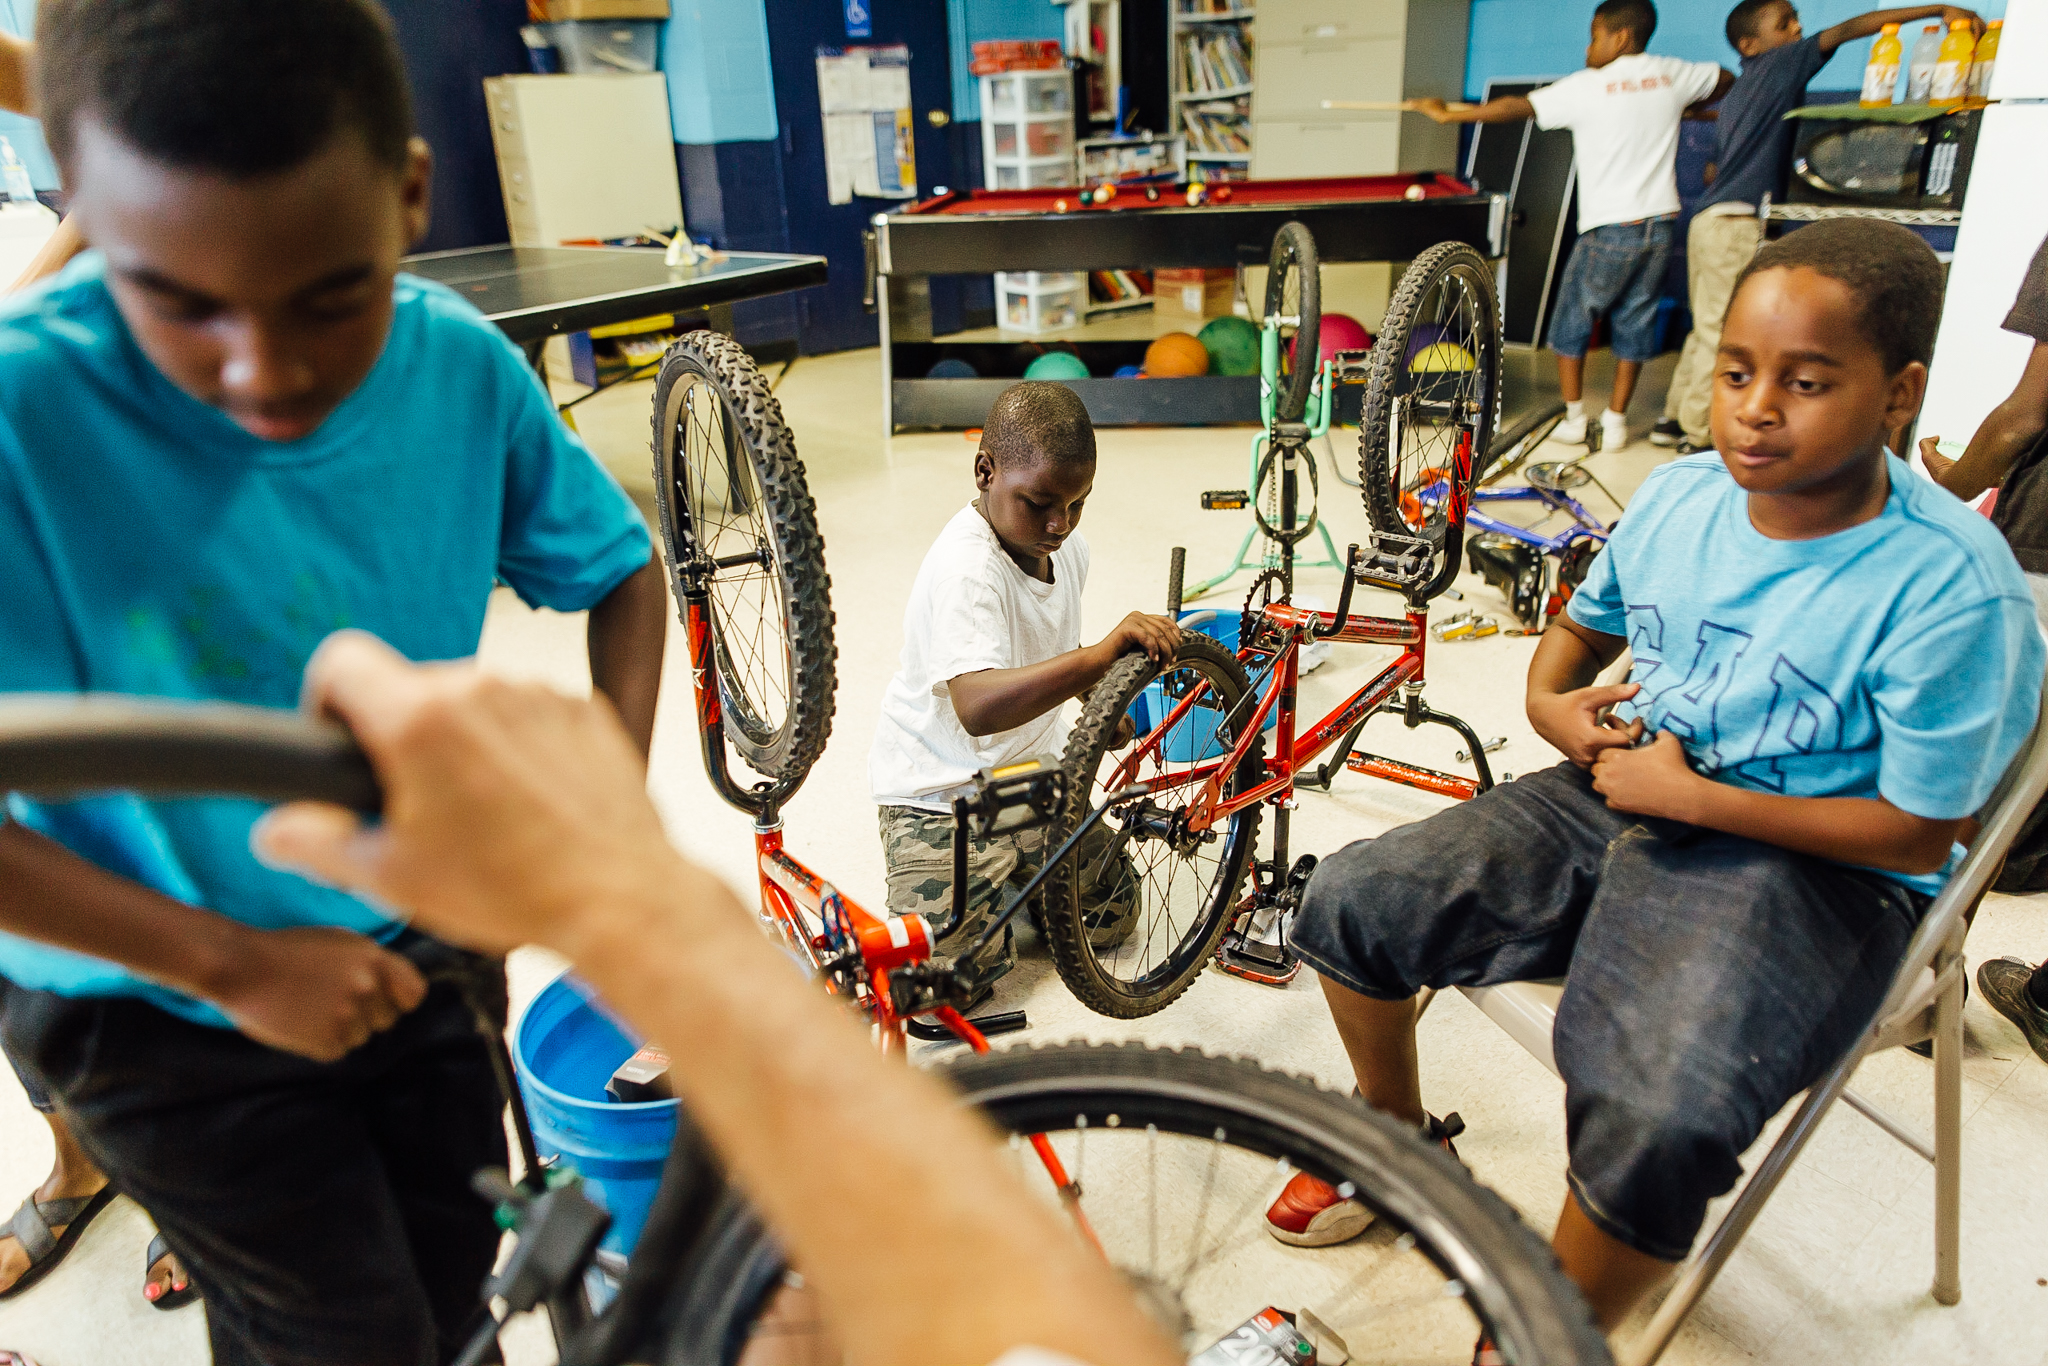 Bike Outreach - What: Teaching children how to restore bikes in the Newtowne 20 NeighborhoodWhen: Tuesday - 6 PMLeader: Tom WolgamuthContact: tmuth57@gmail.com